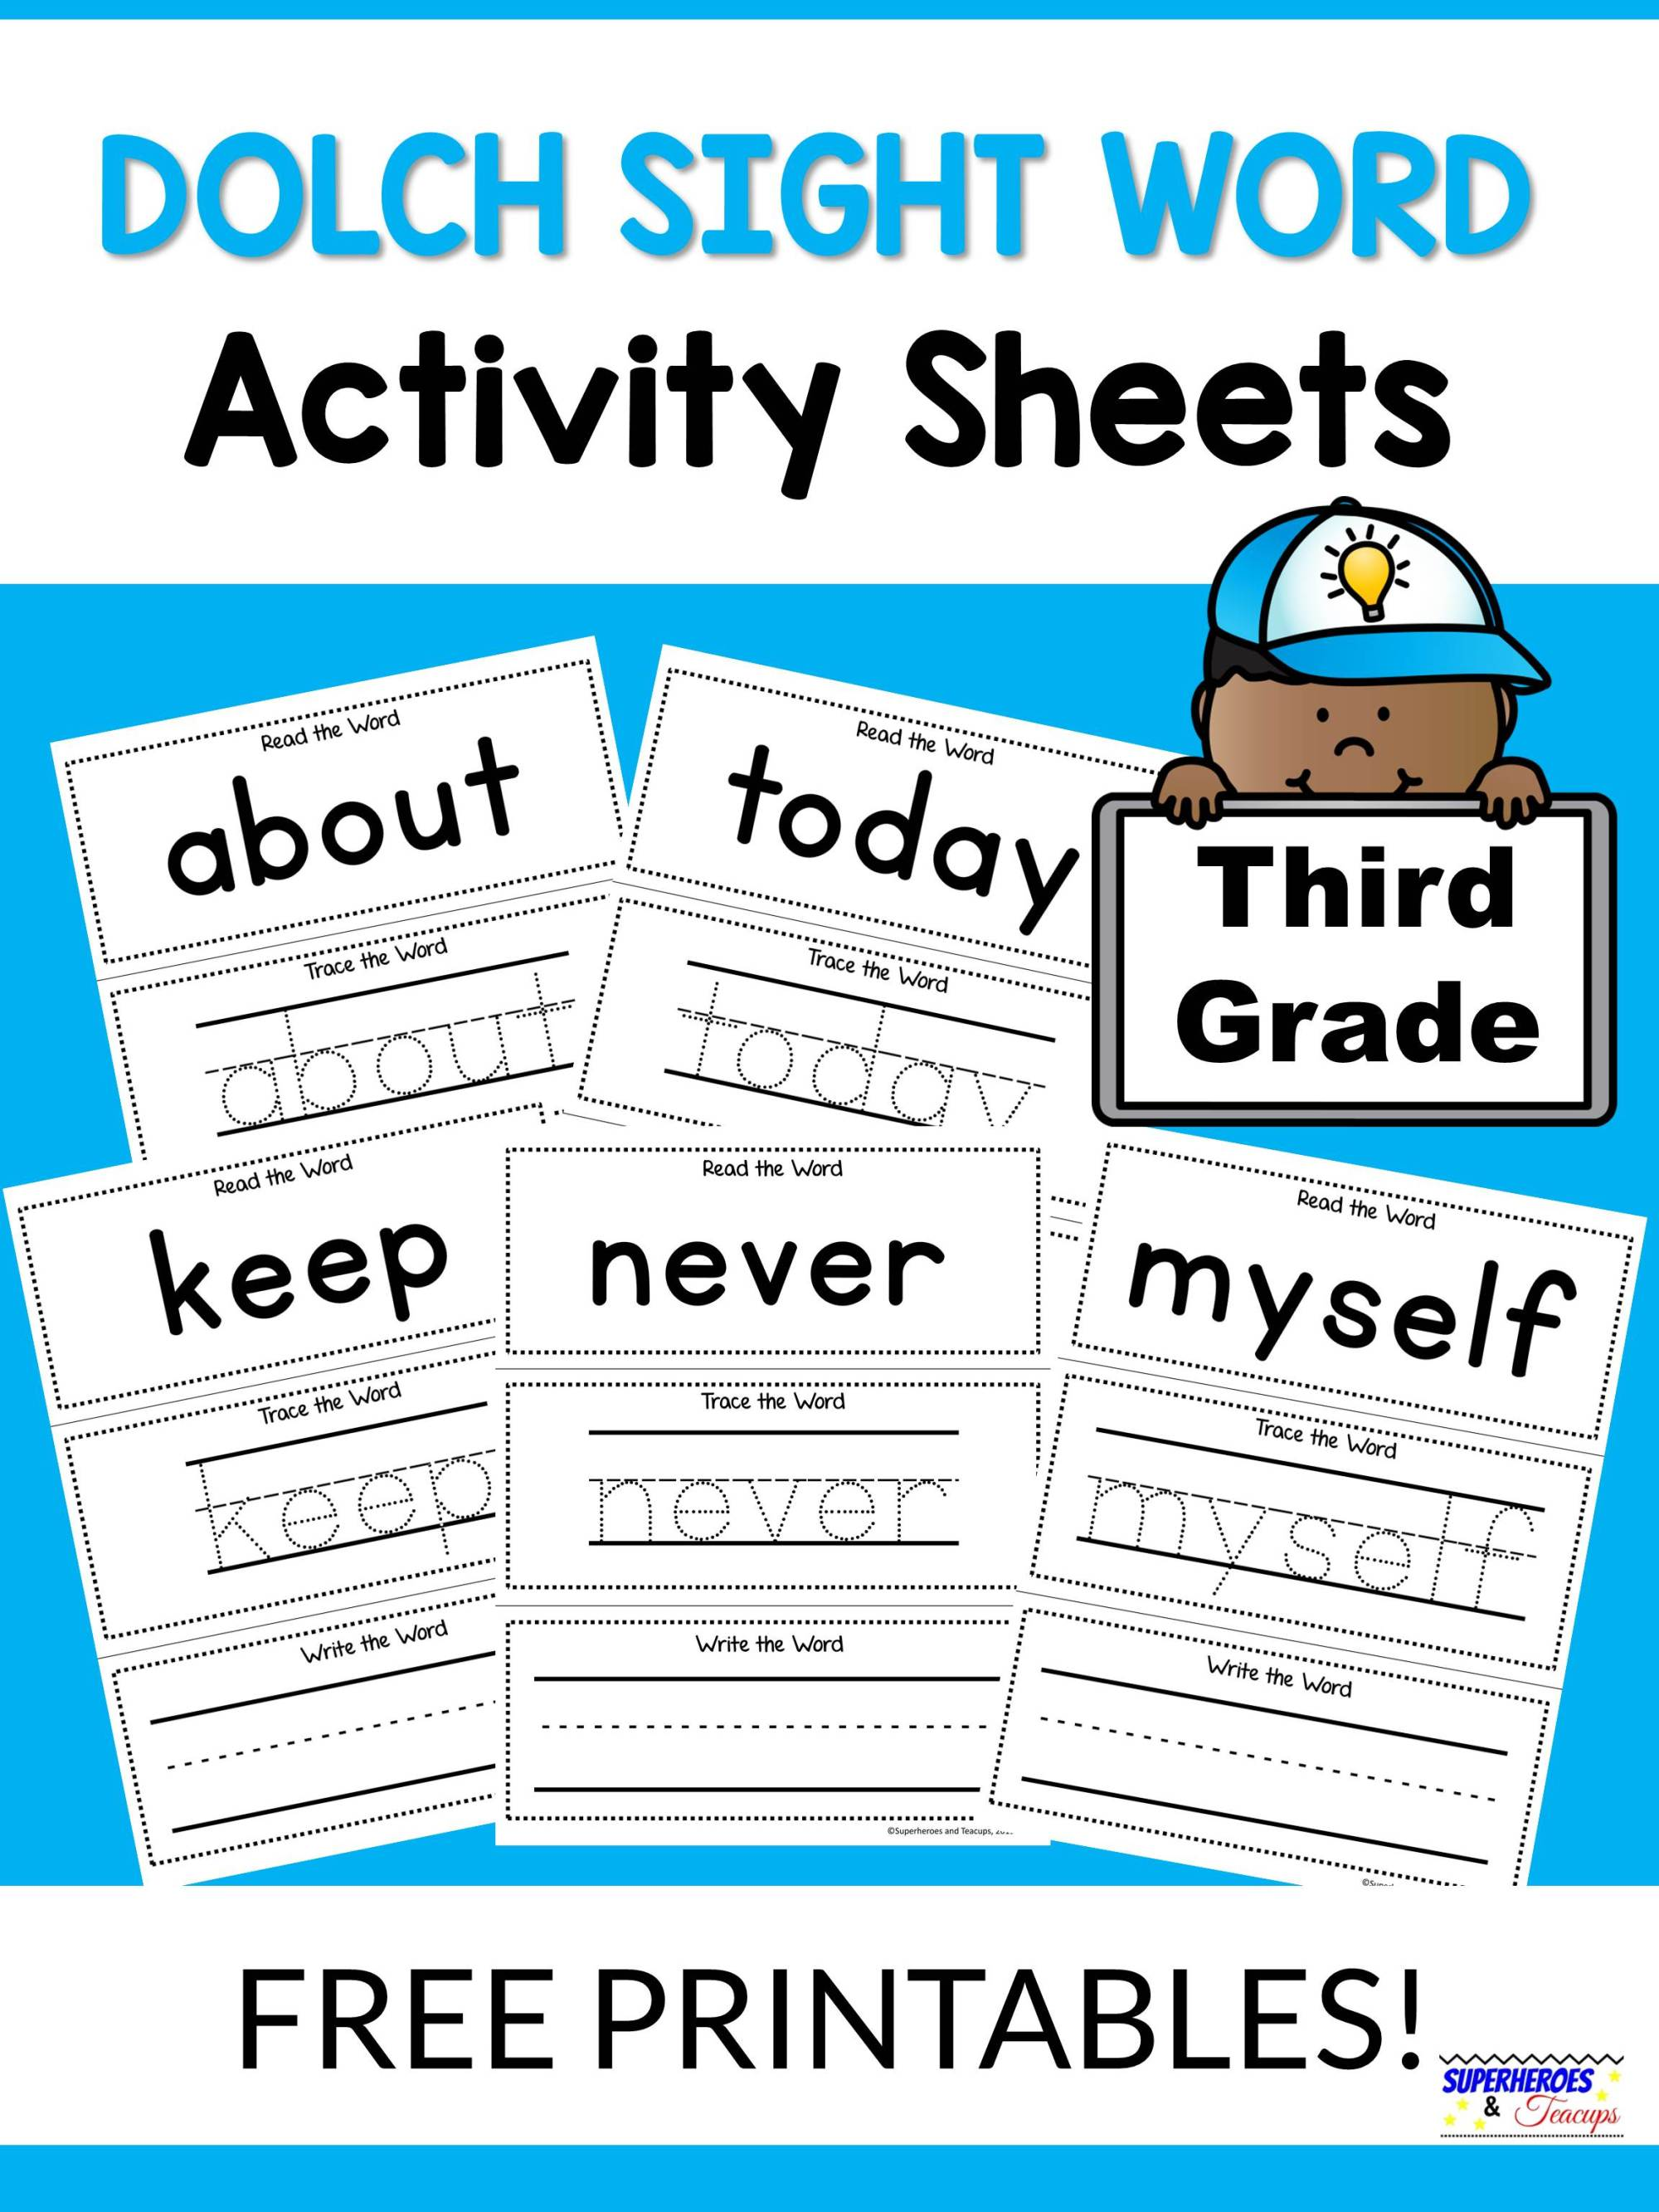 hight resolution of Third Grade Dolch Words Worksheets   Printable Worksheets and Activities  for Teachers